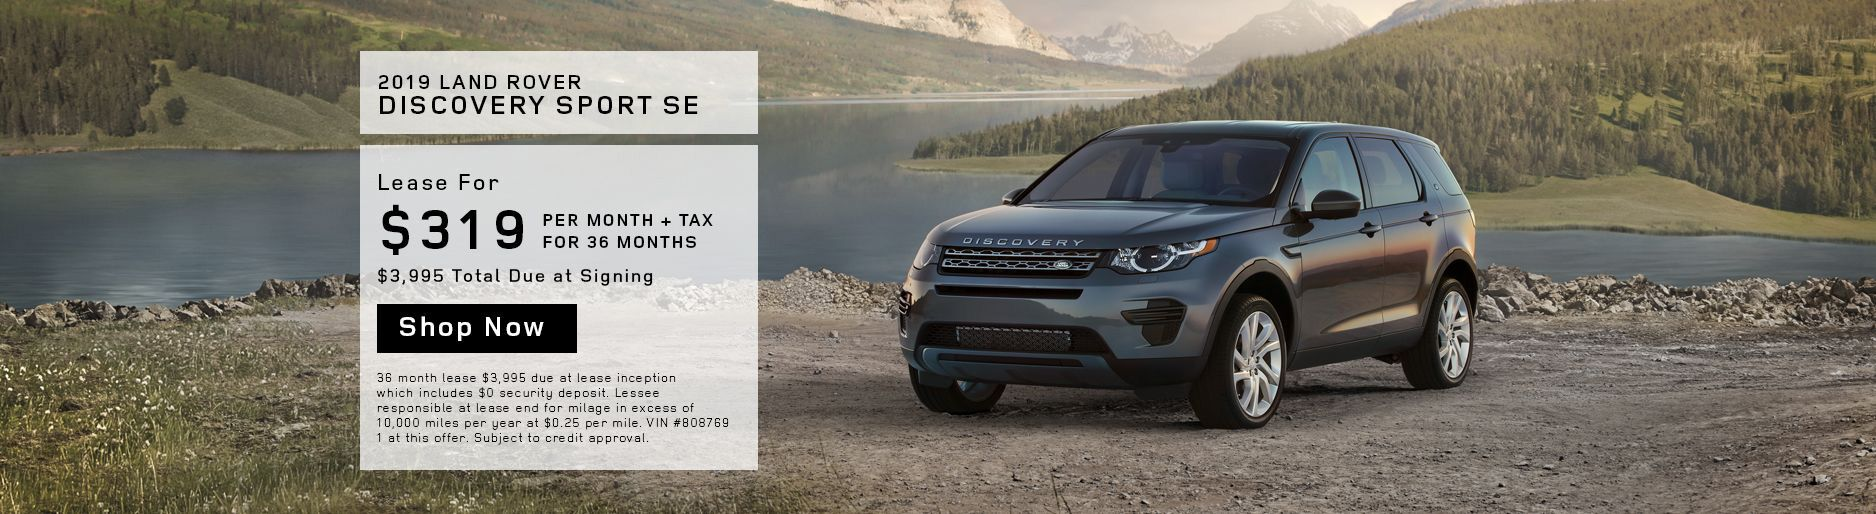 Discovery Sport Lease